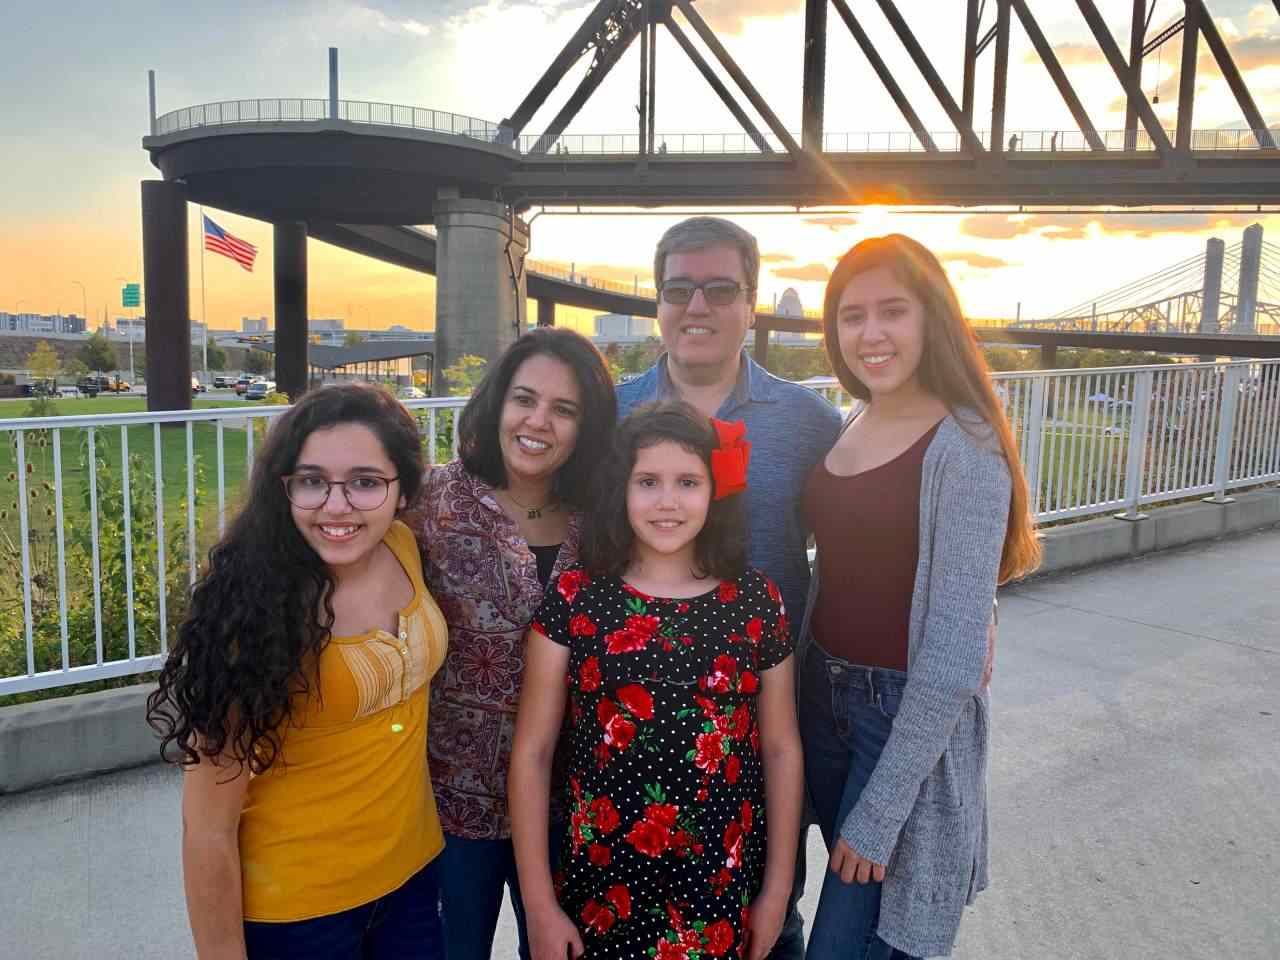 Leila e familia em Louisville Walking Bridge, downtown